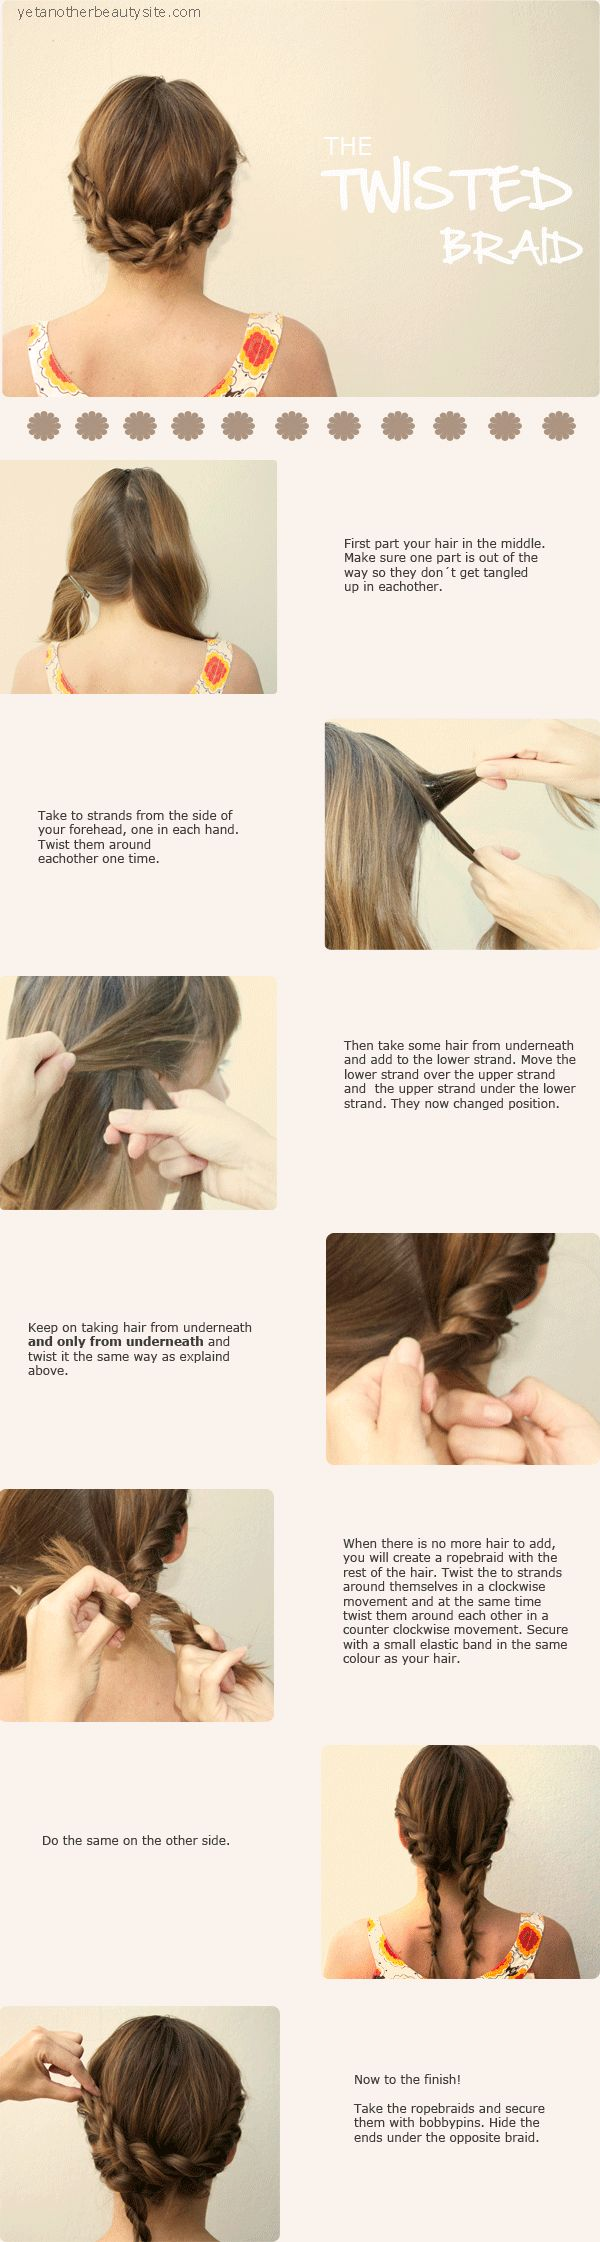 best beauty images on pinterest braided hairstyle braided